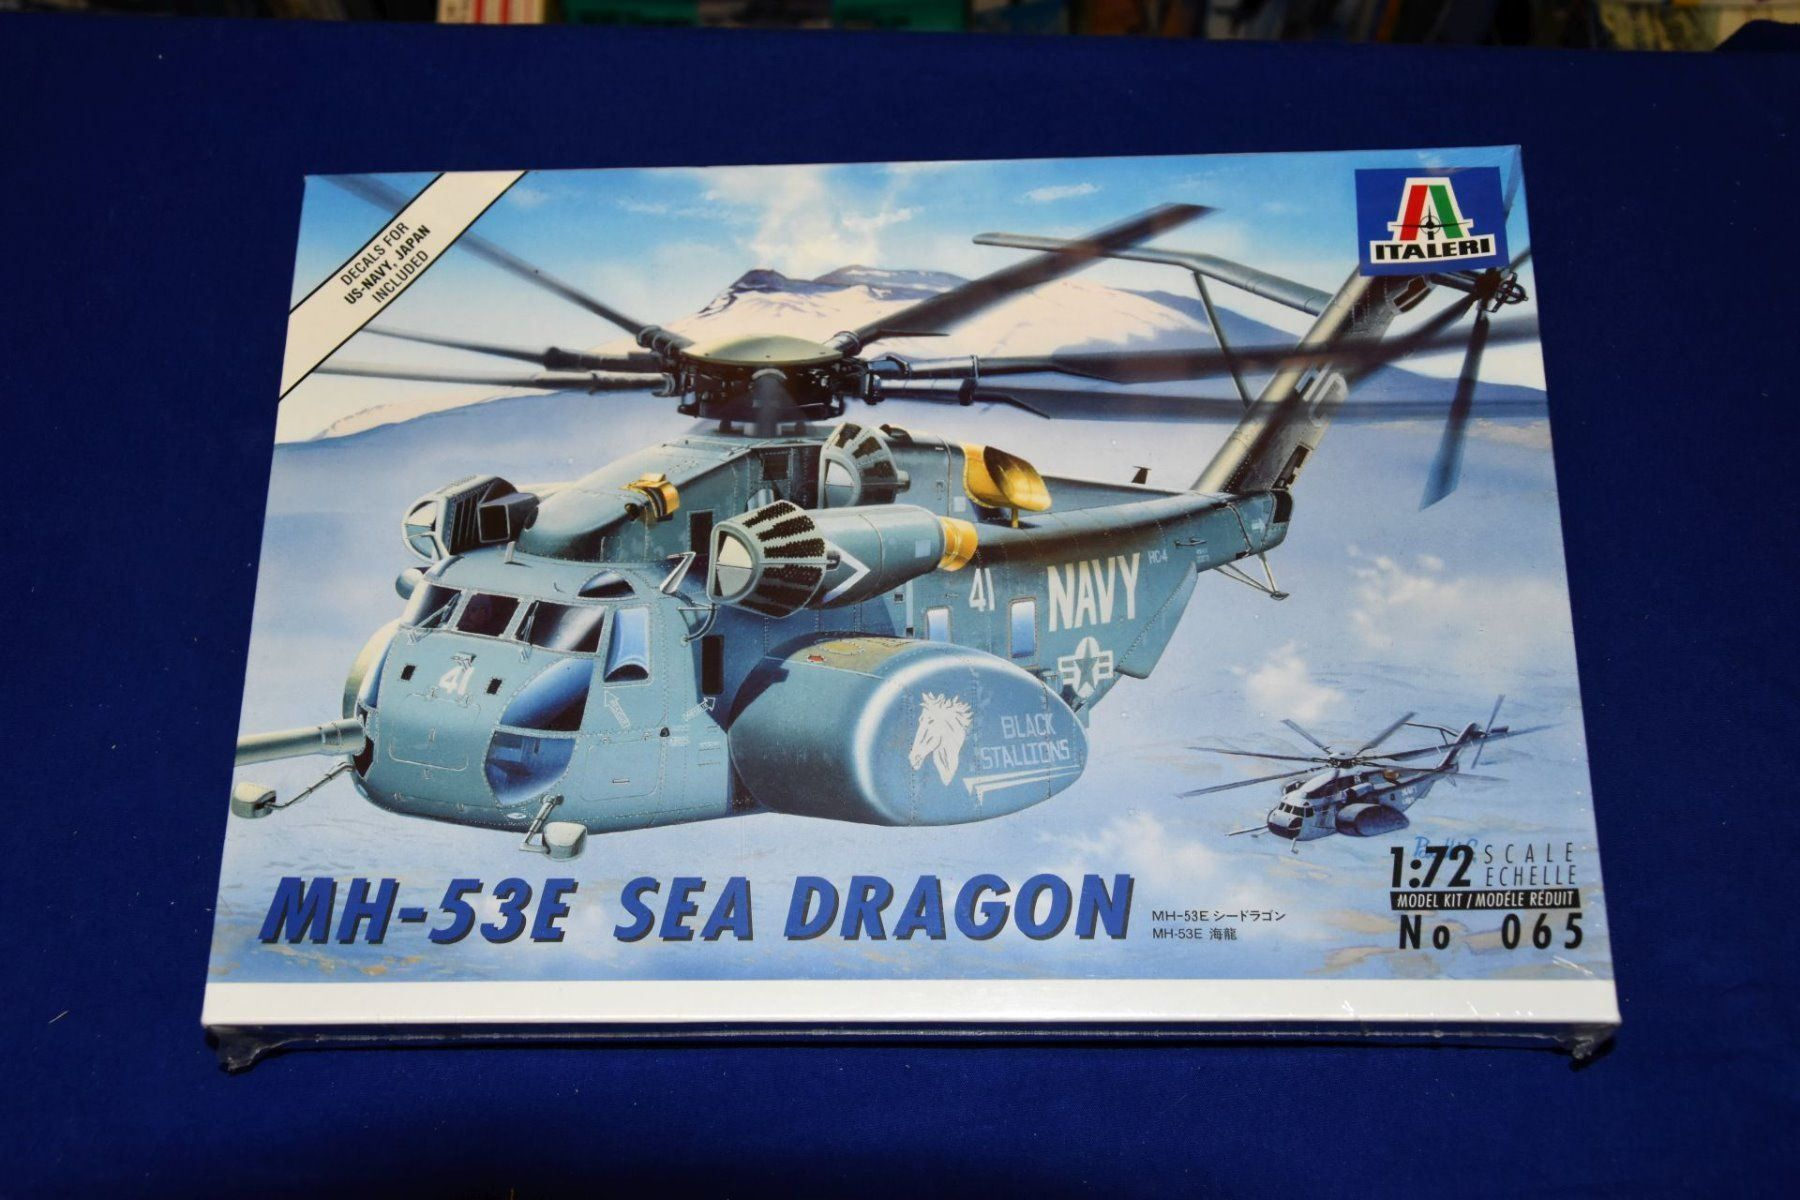 MH-53 Sea Dragon